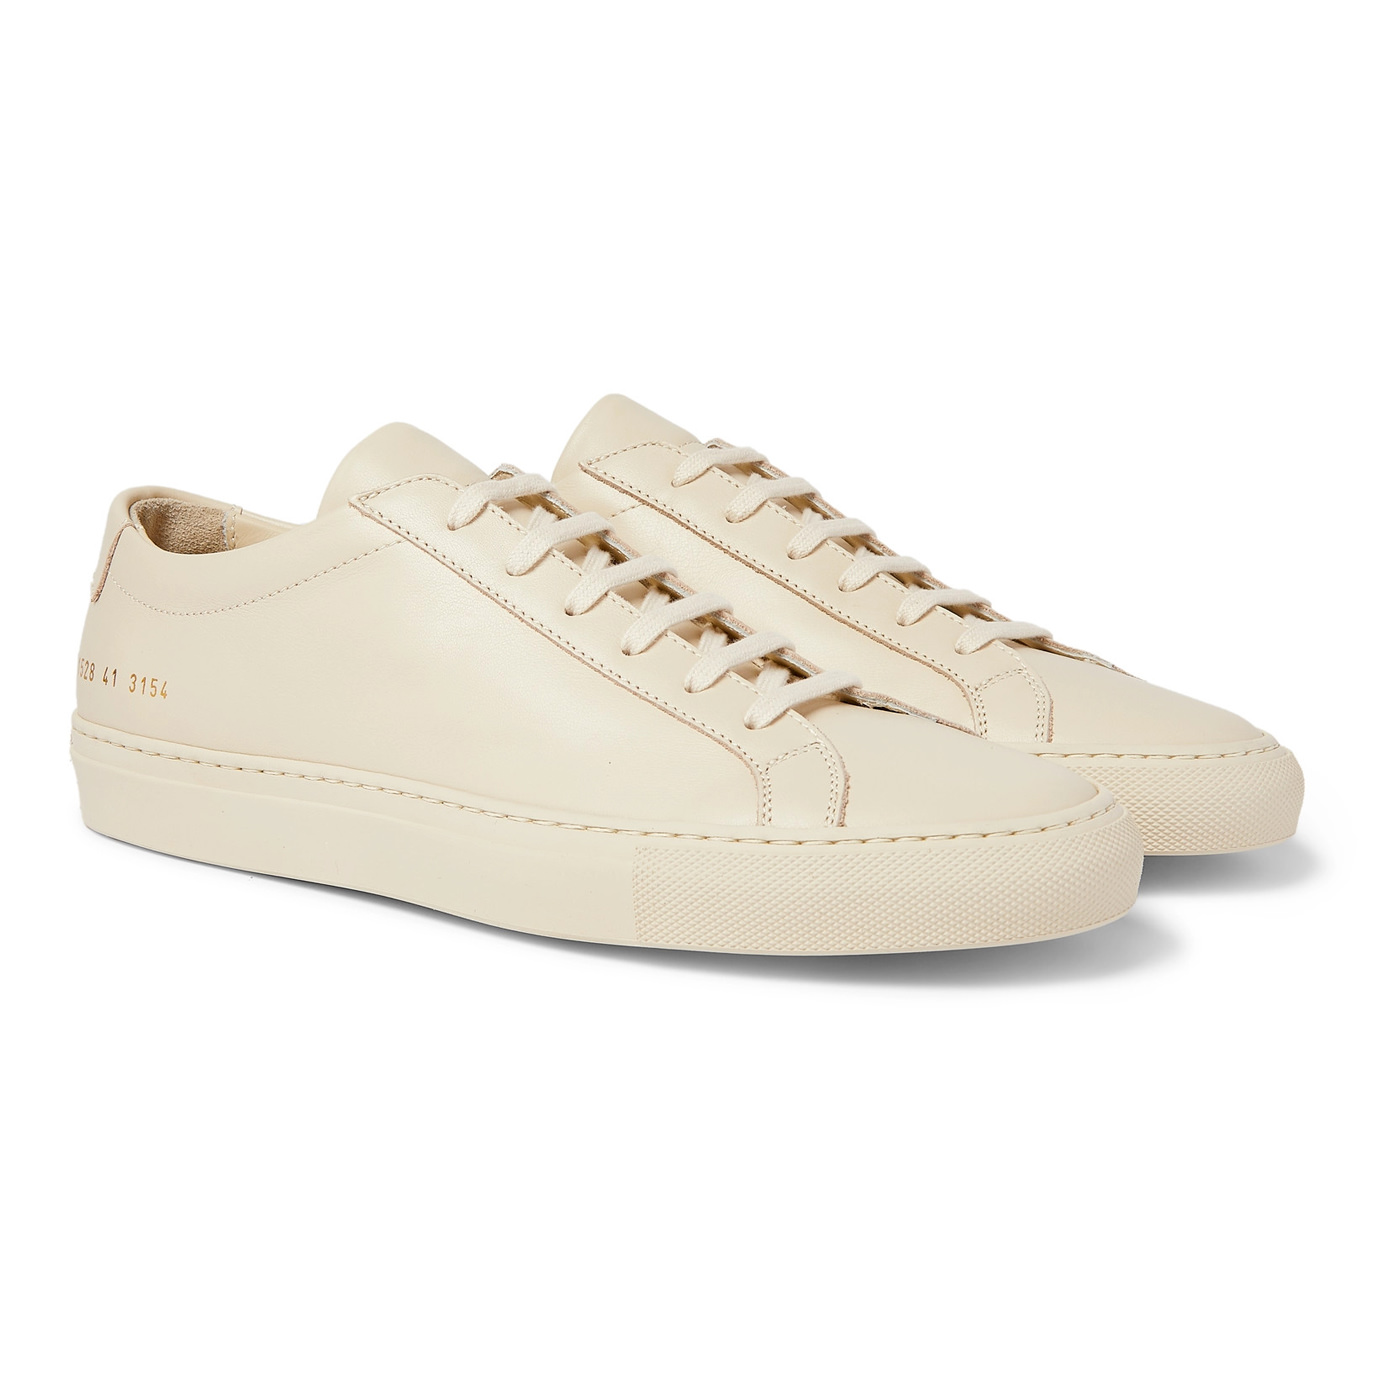 Style Mr Porter Sneakers Common Projects Original Achilles Cuir Beige